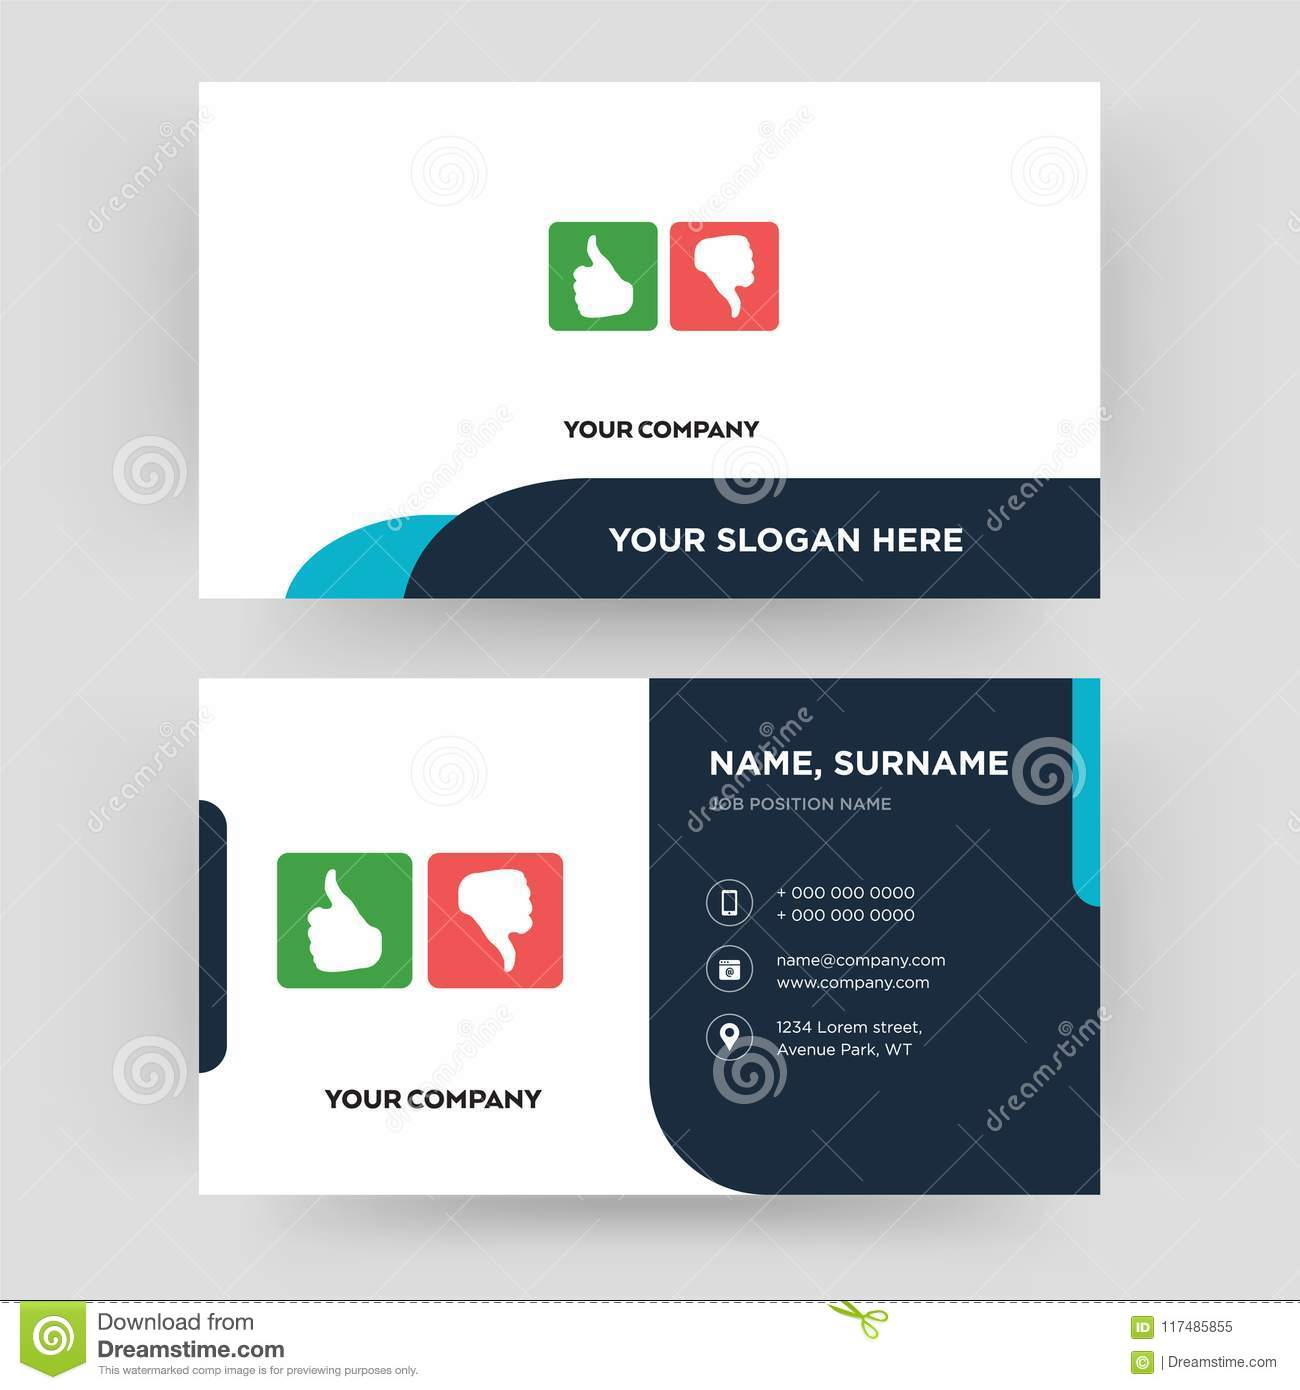 Good Bad Business Card Design Template Visiting For Your Company